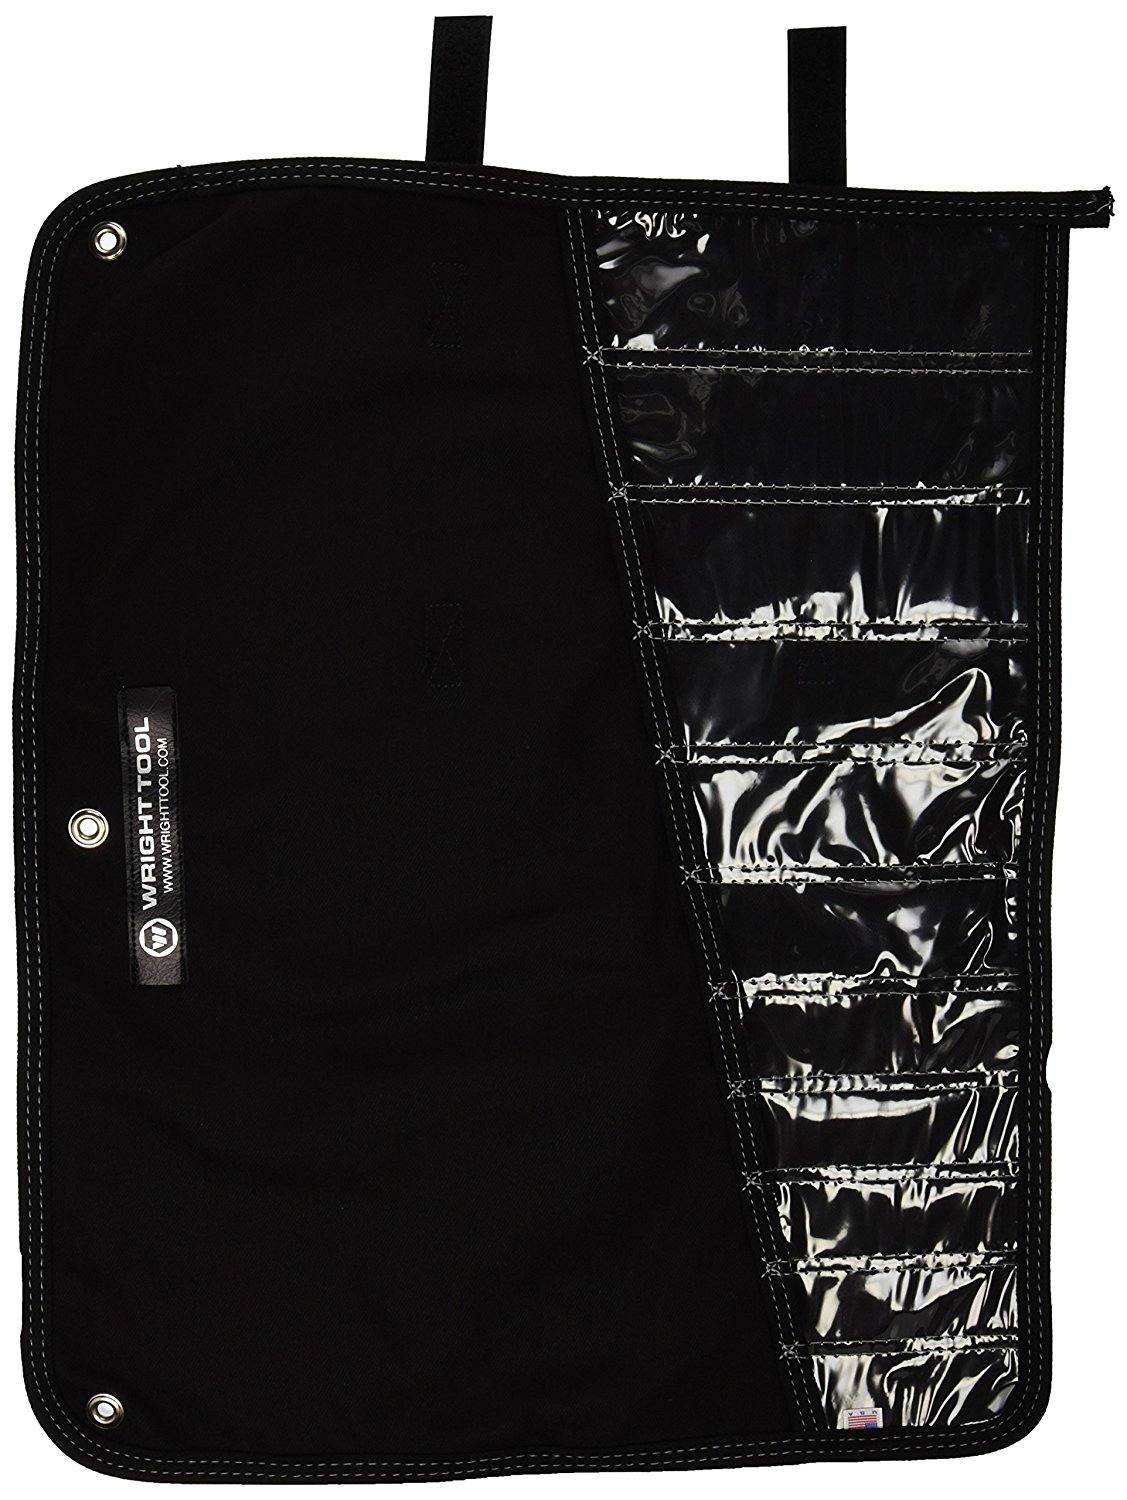 "Wright Tool 711-ROLL Denim Tool Roll - 22-5/8"" x 17-3/4"" - 11 pockets"